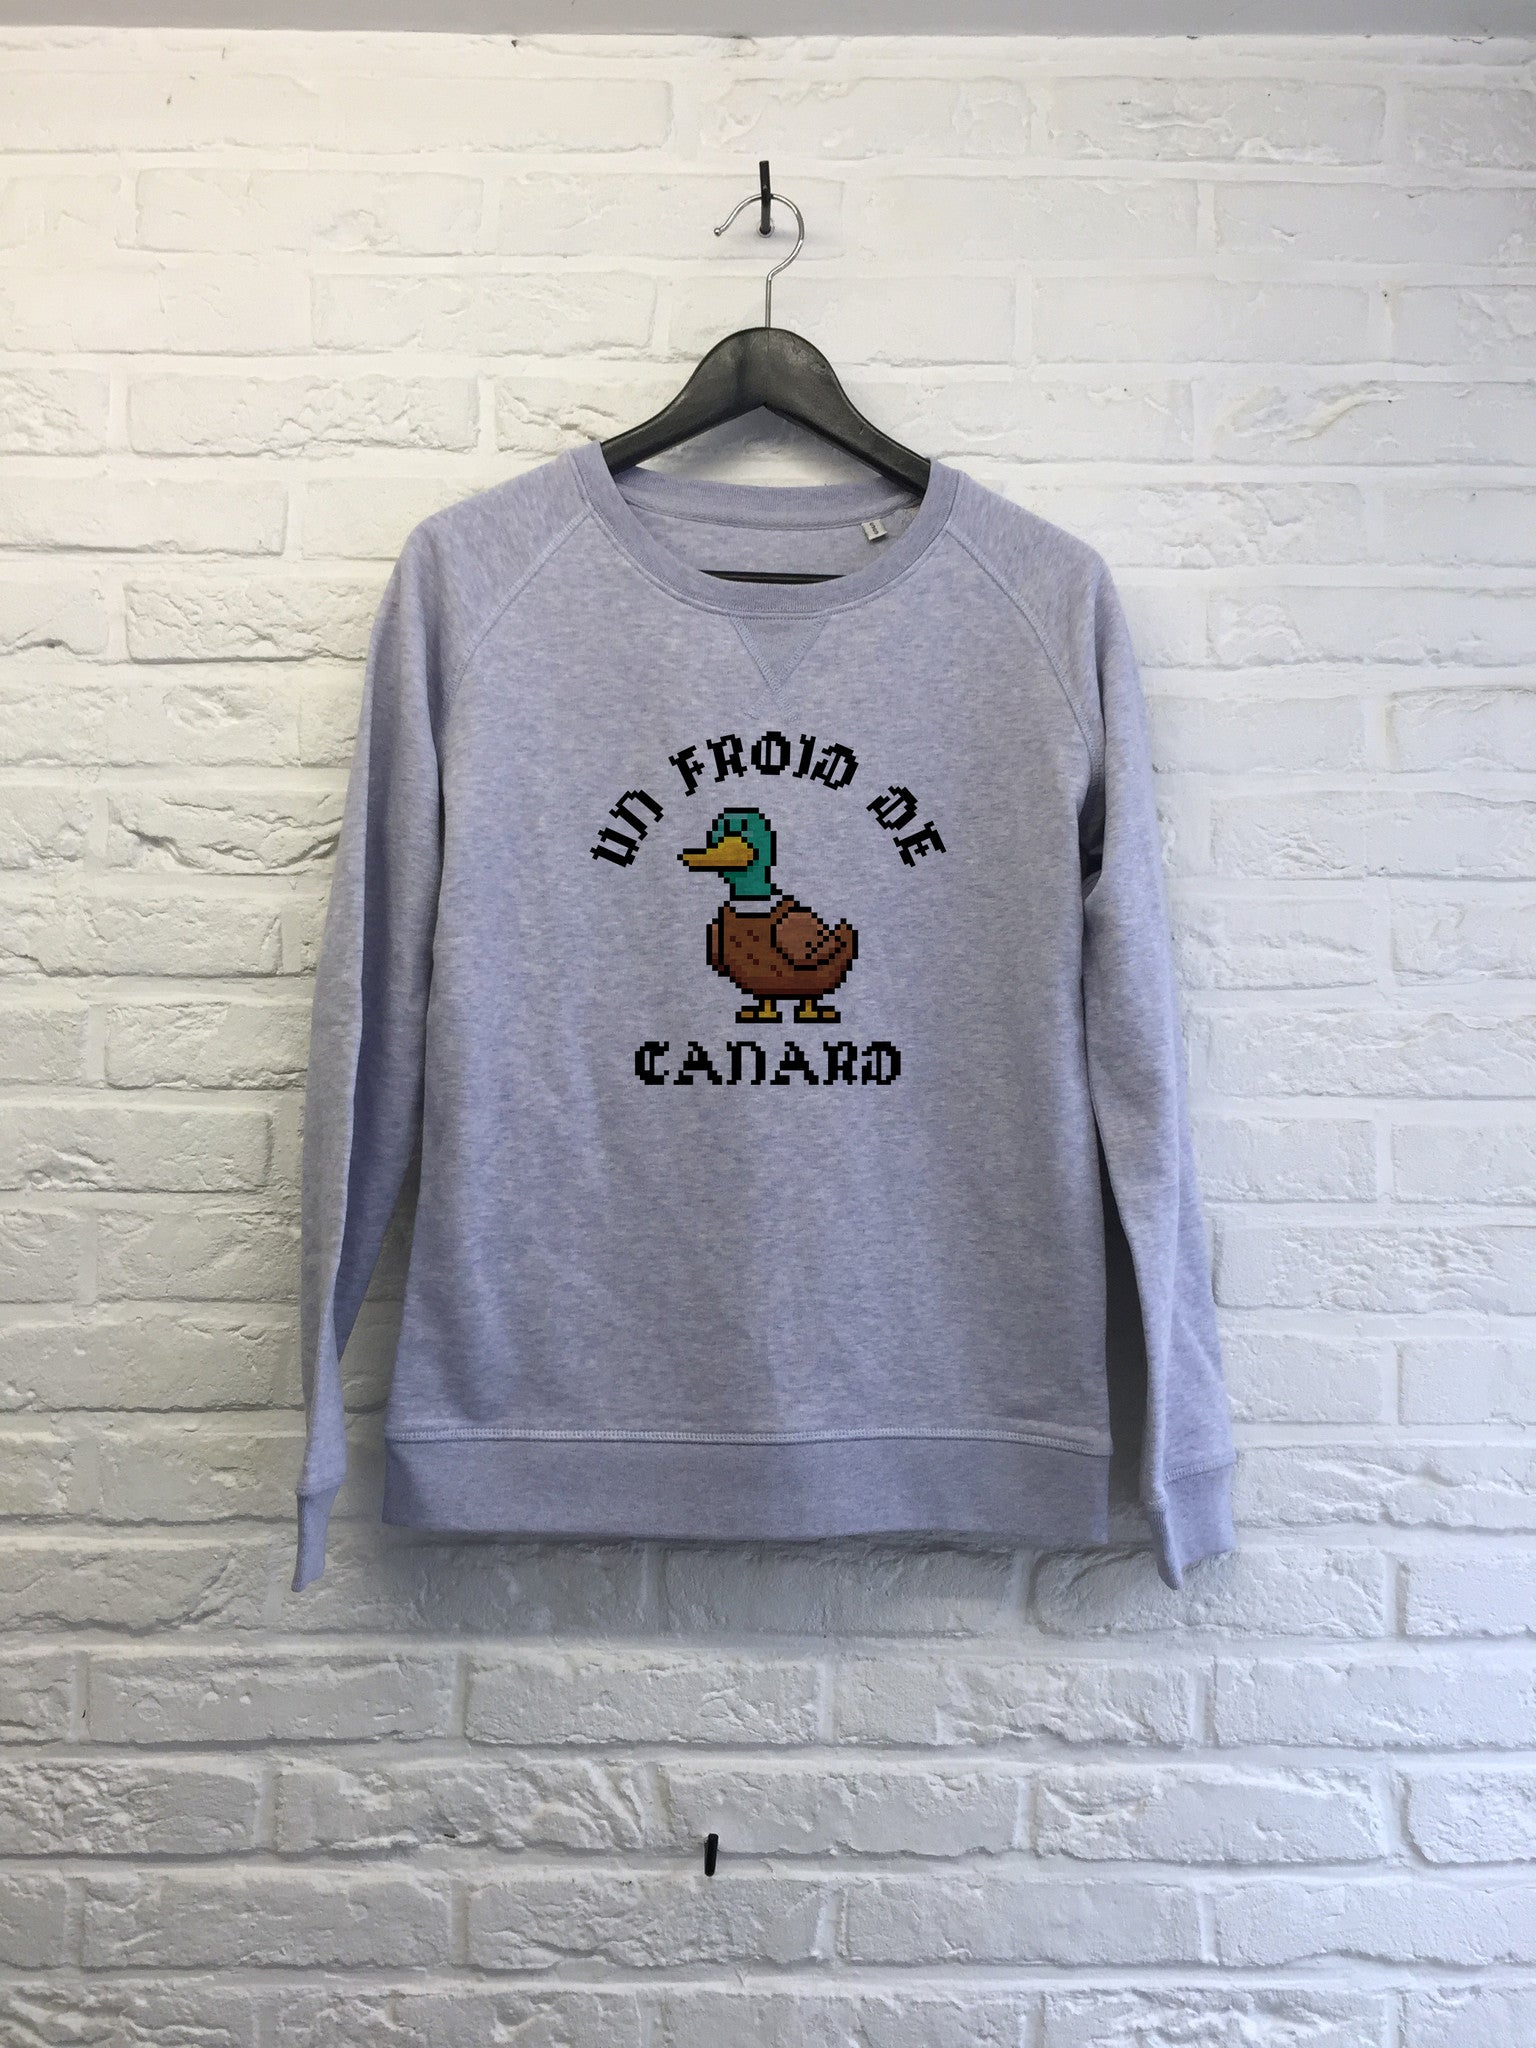 Un froid de Canard - Sweat - Femme-Sweat shirts-Atelier Amelot